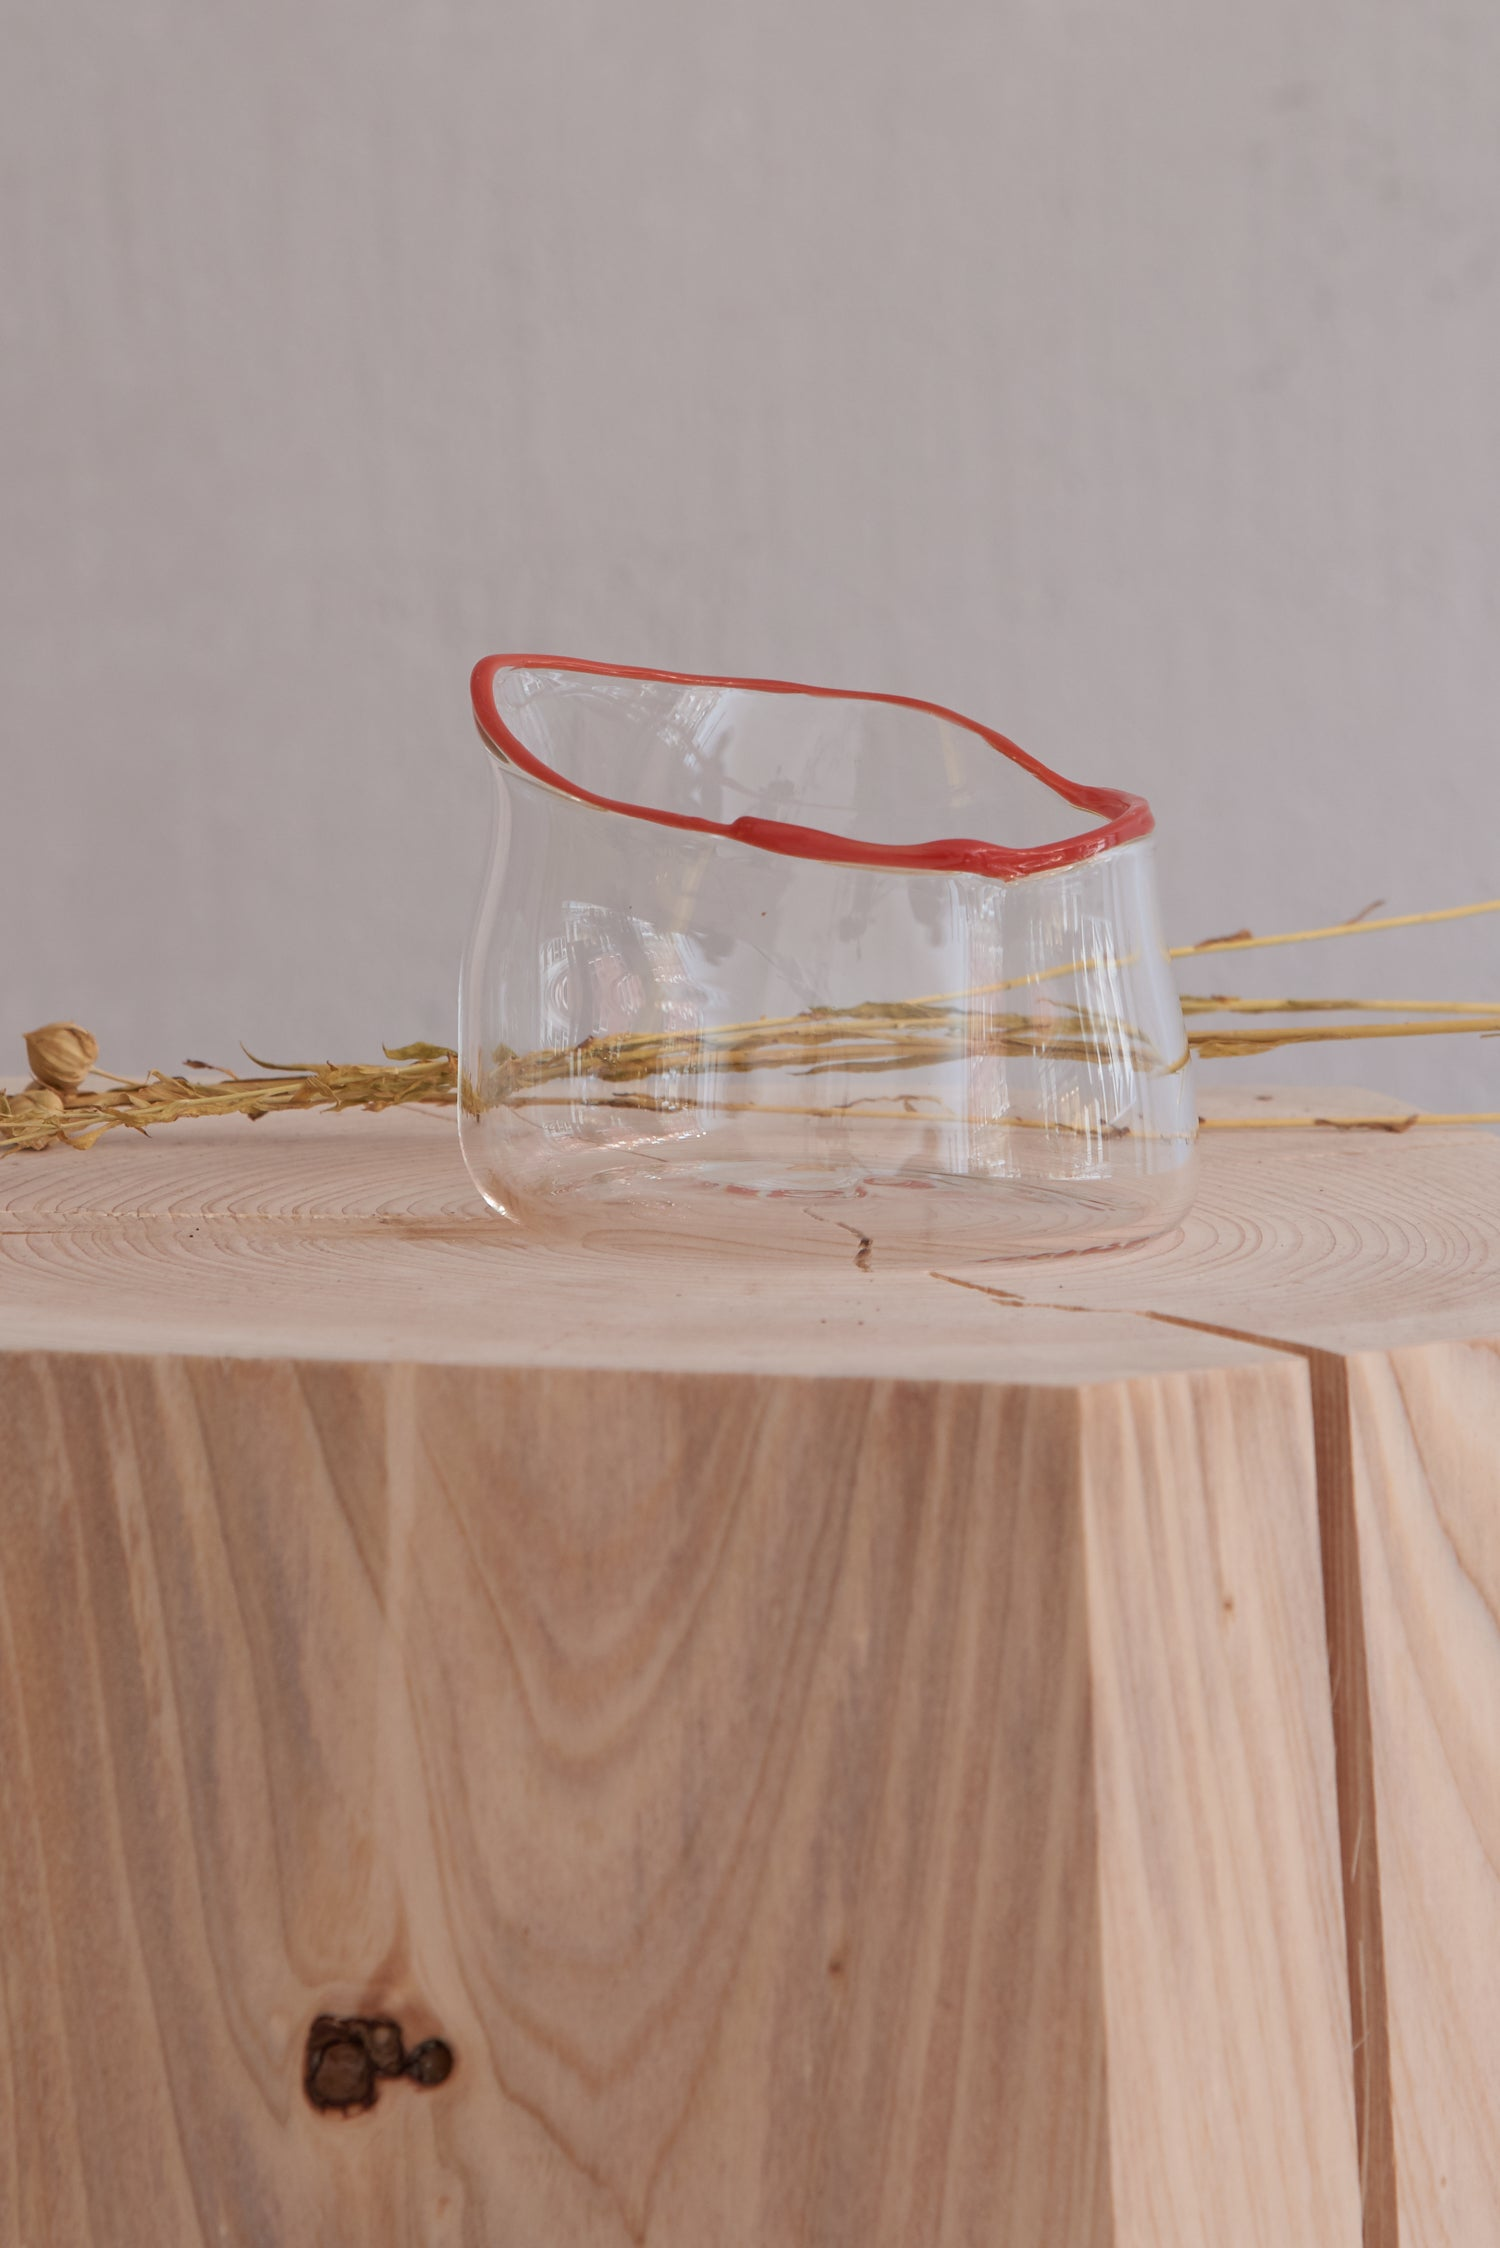 Jochen Holz - Glass - Small Kintsugi